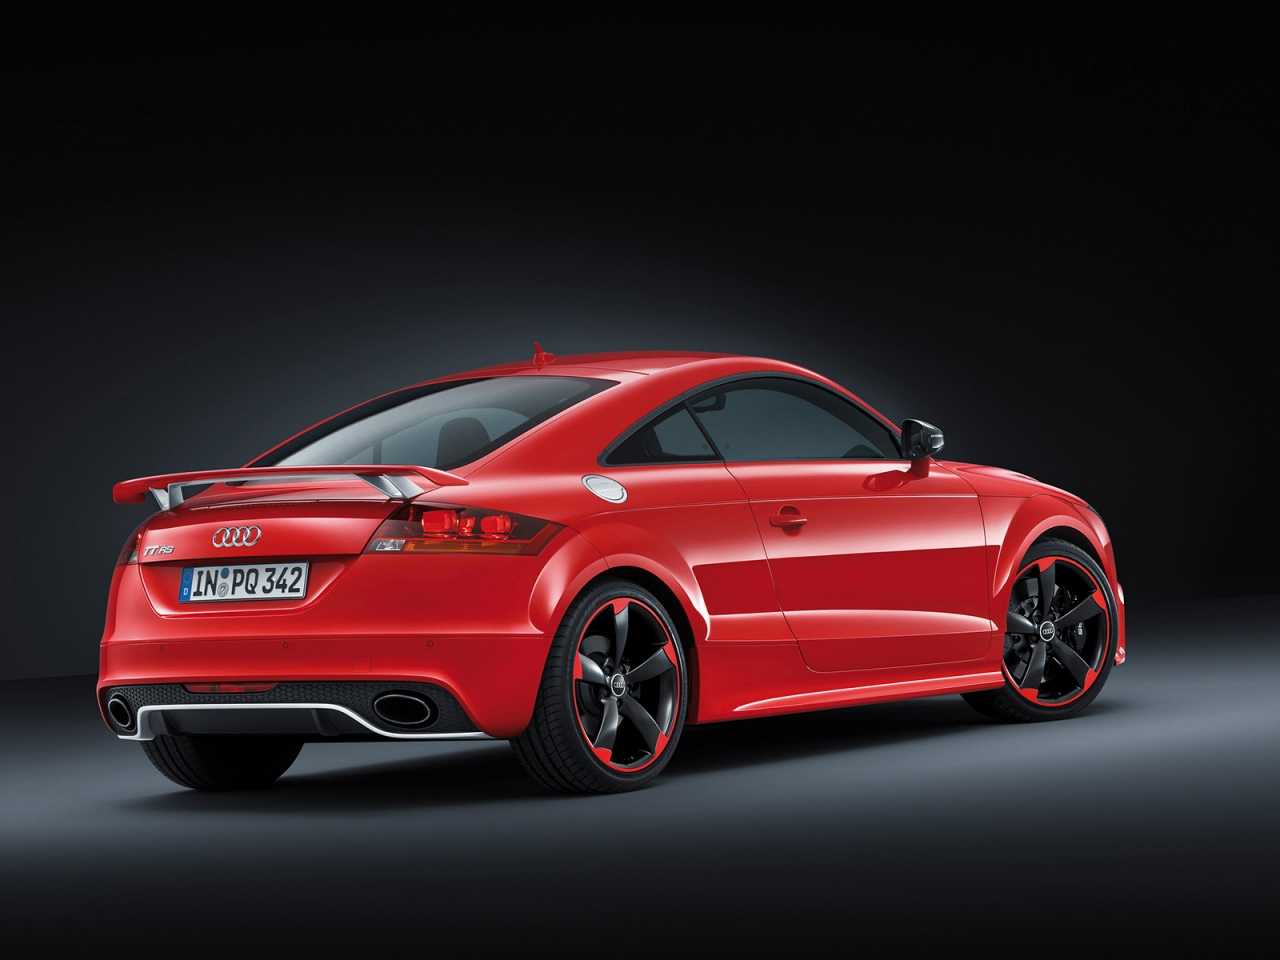 Audi TT RS Plus Rear for 1280 x 960 resolution